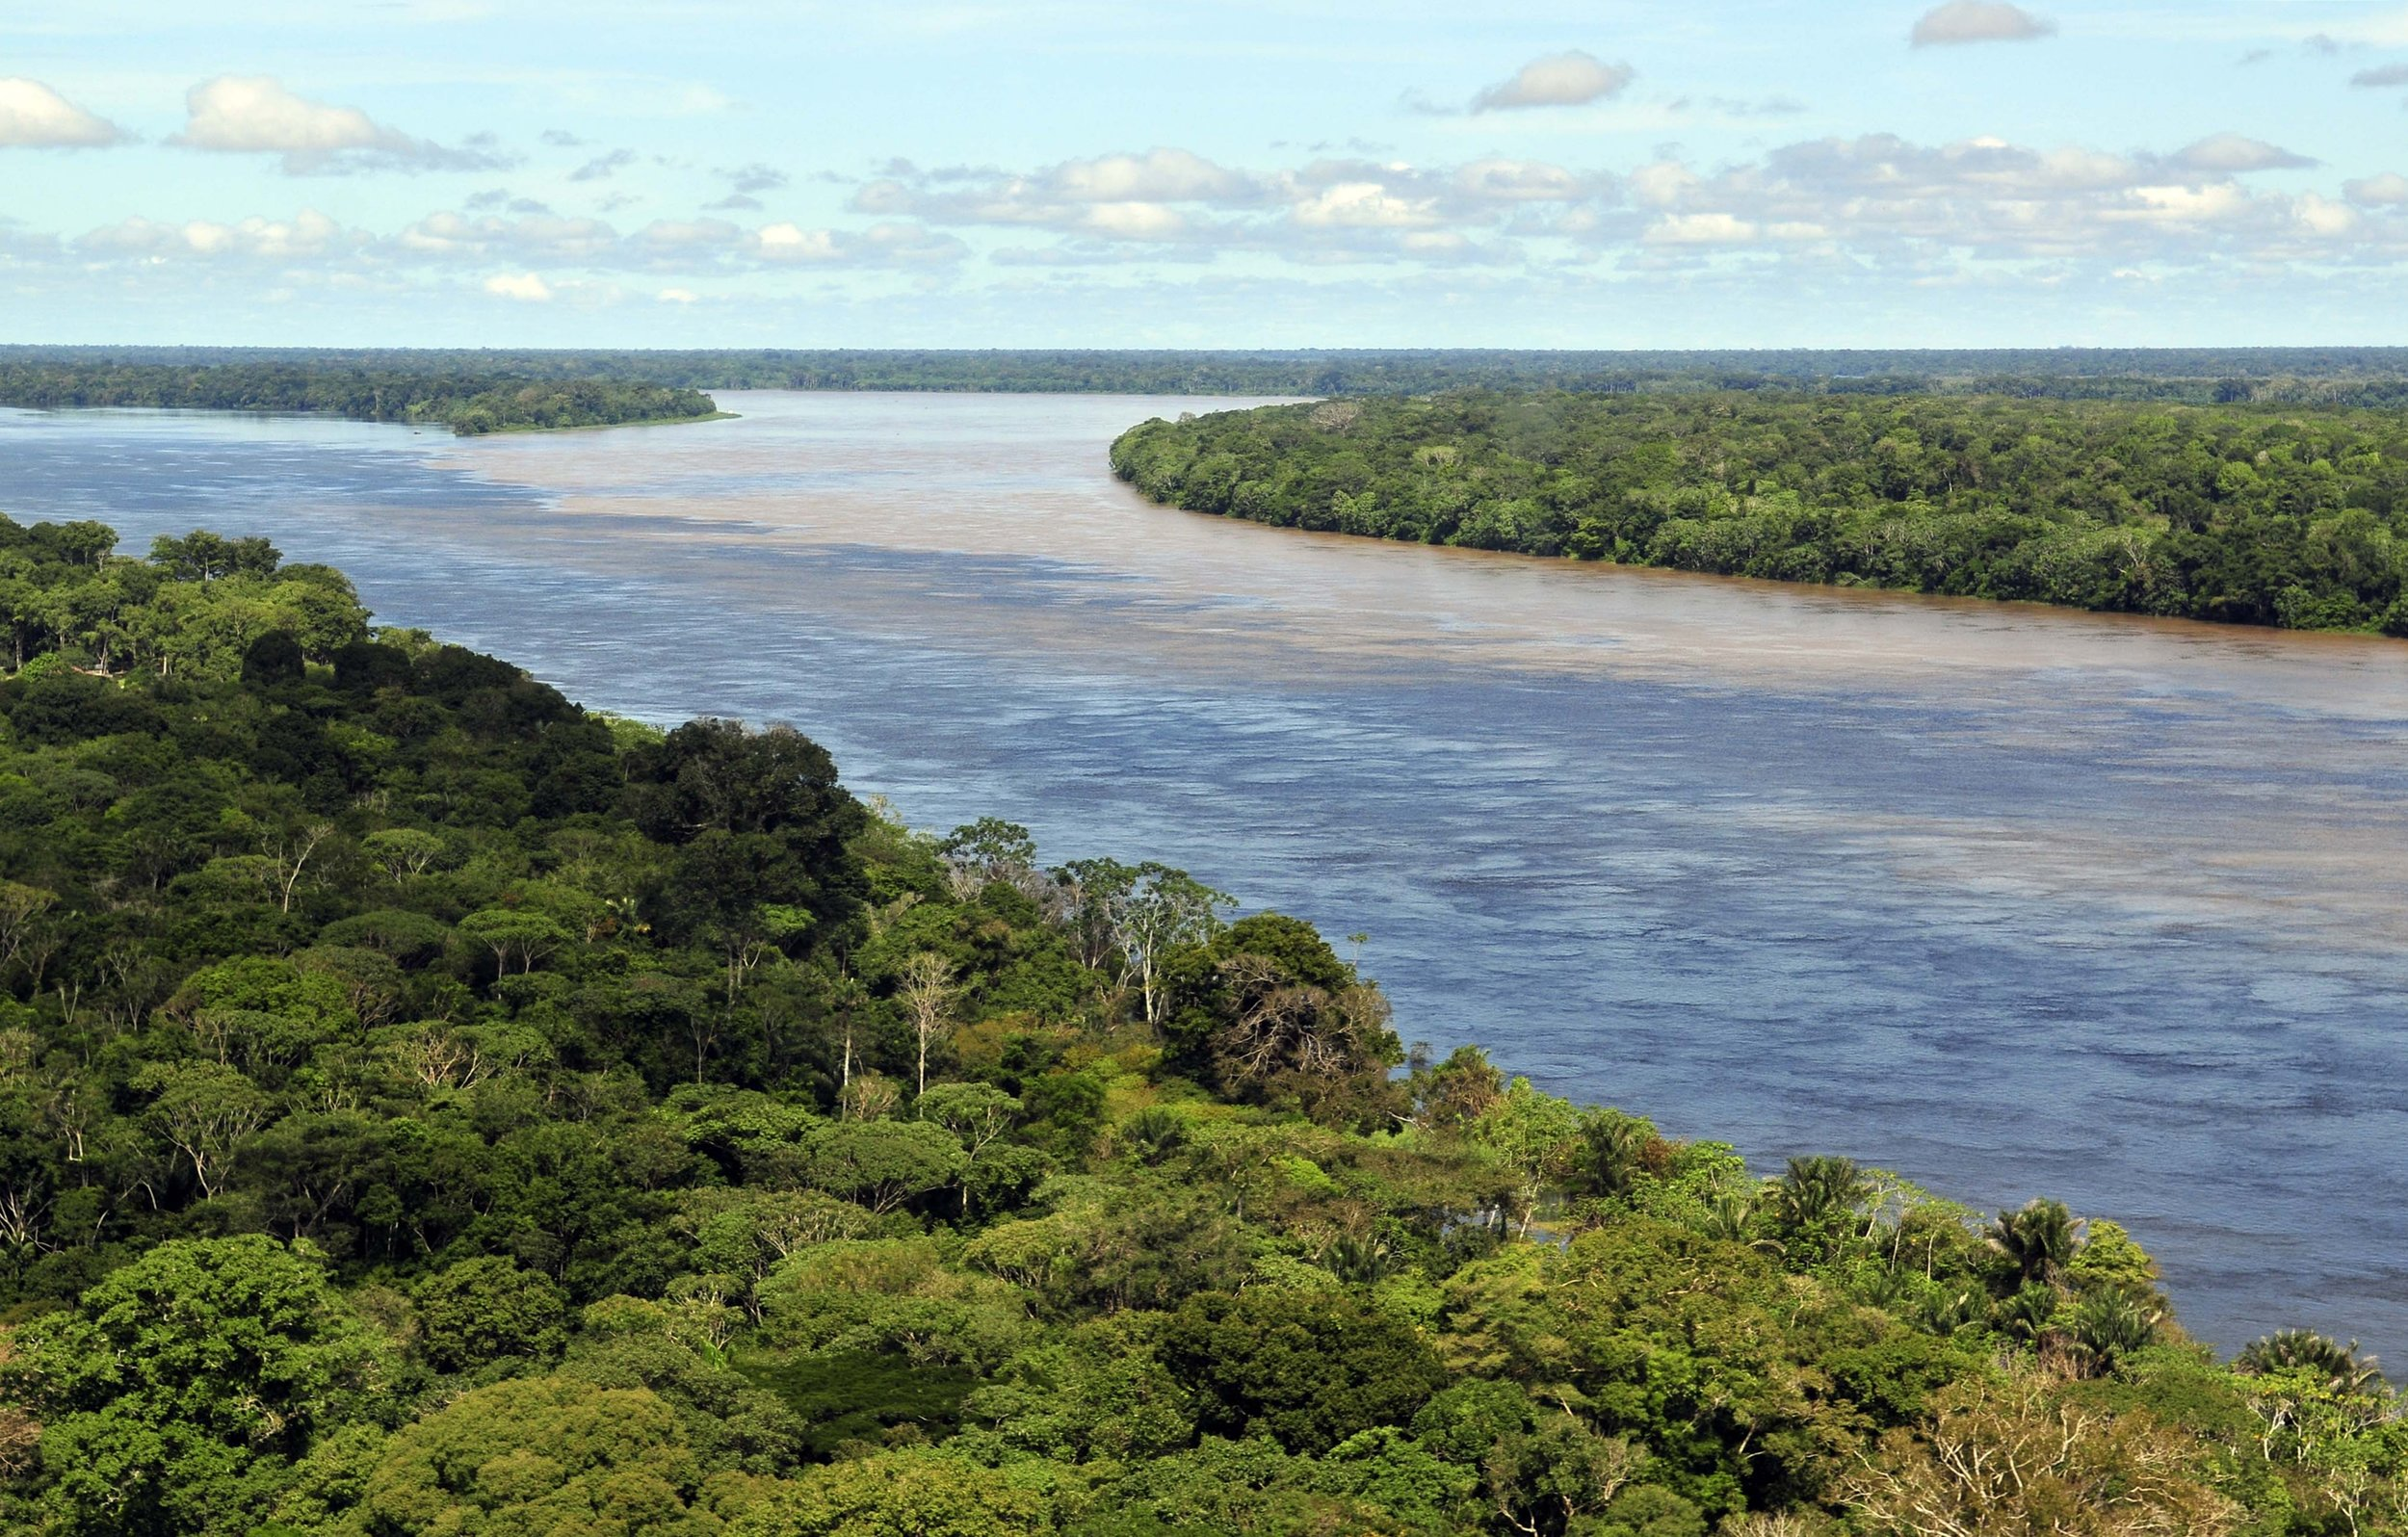 Amazon_River_95_km_upstream_of_Tabatinga,_Leticia.jpg